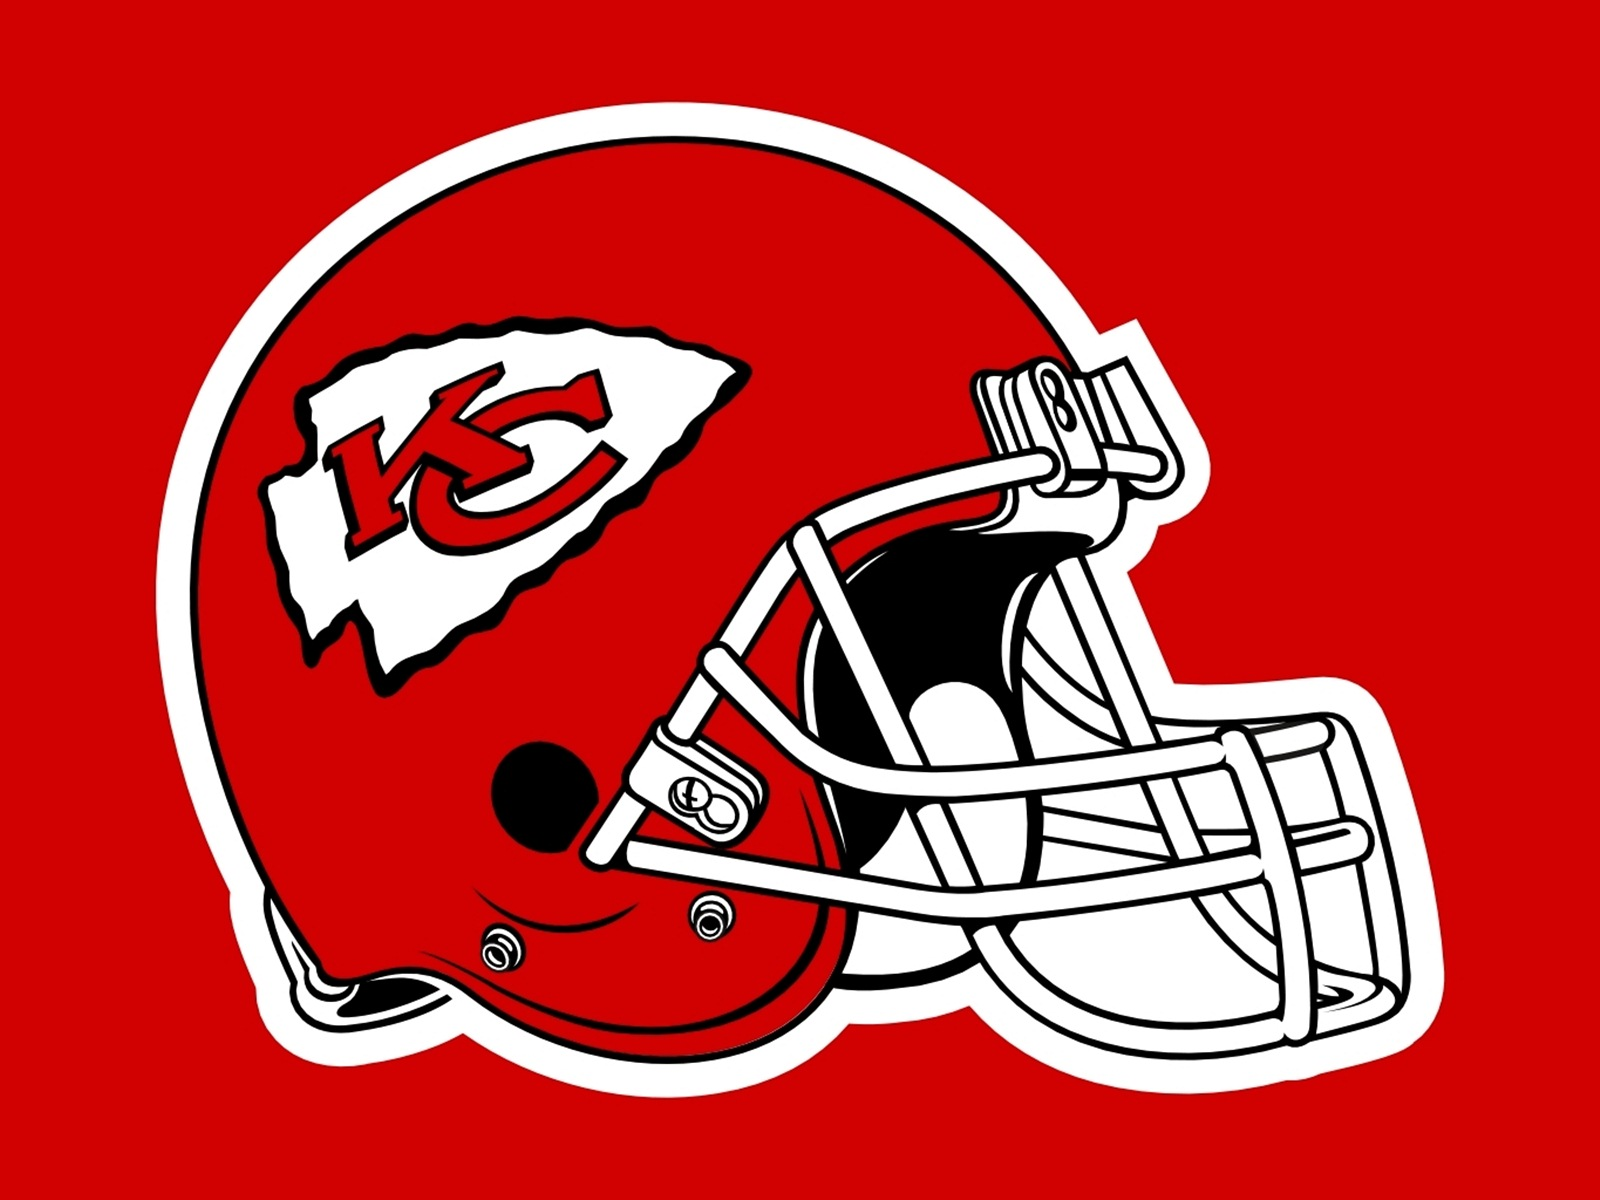 kansas city chiefs helmet clipart - Kansas City Chiefs Vector PNG